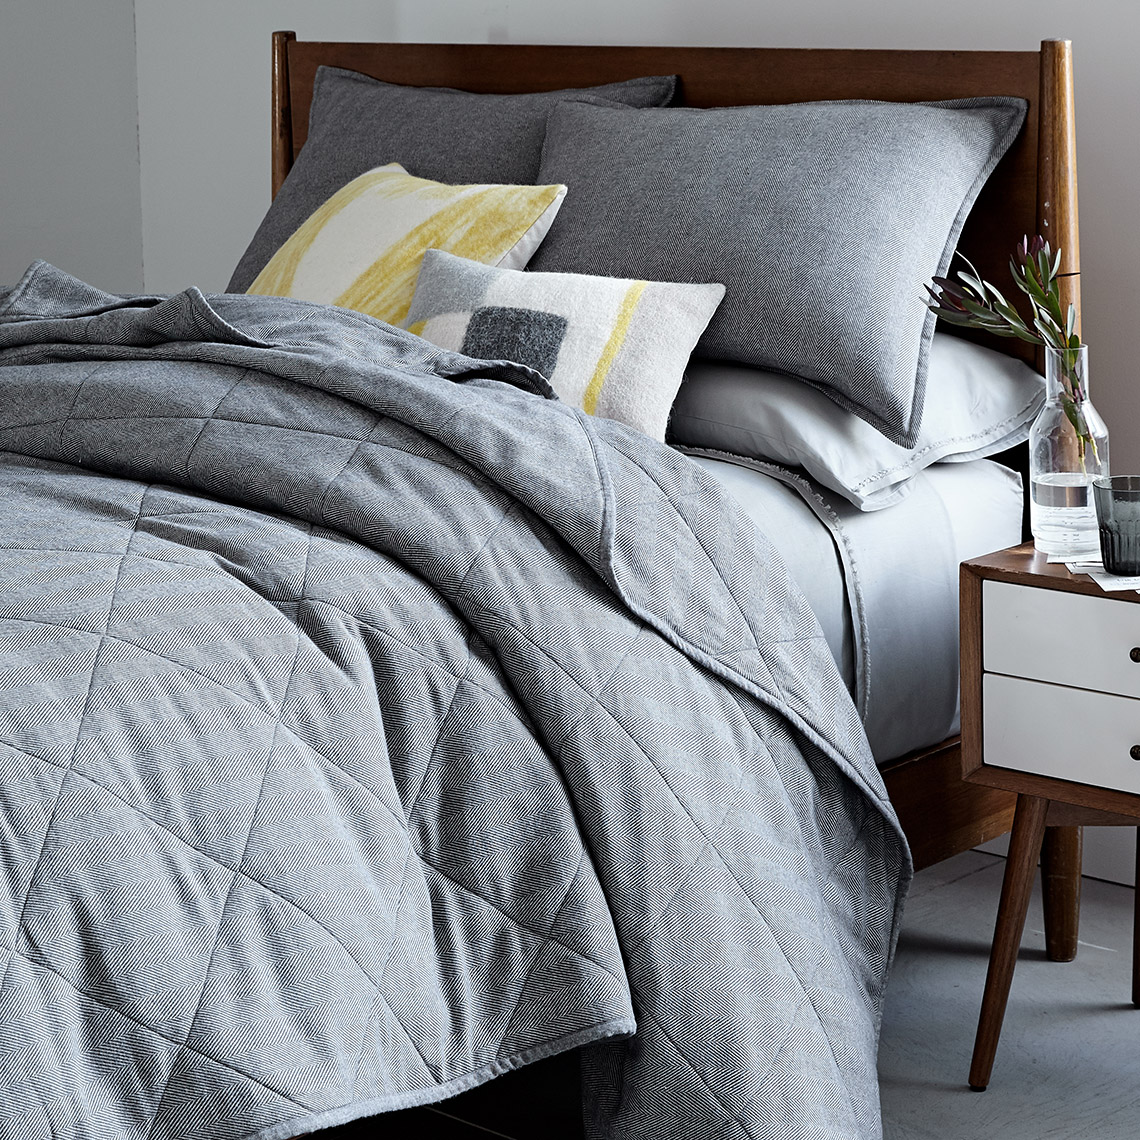 pip-4068594-flannel-herringbone-coverlet-full-queen-charcoal-v2-hl16-109